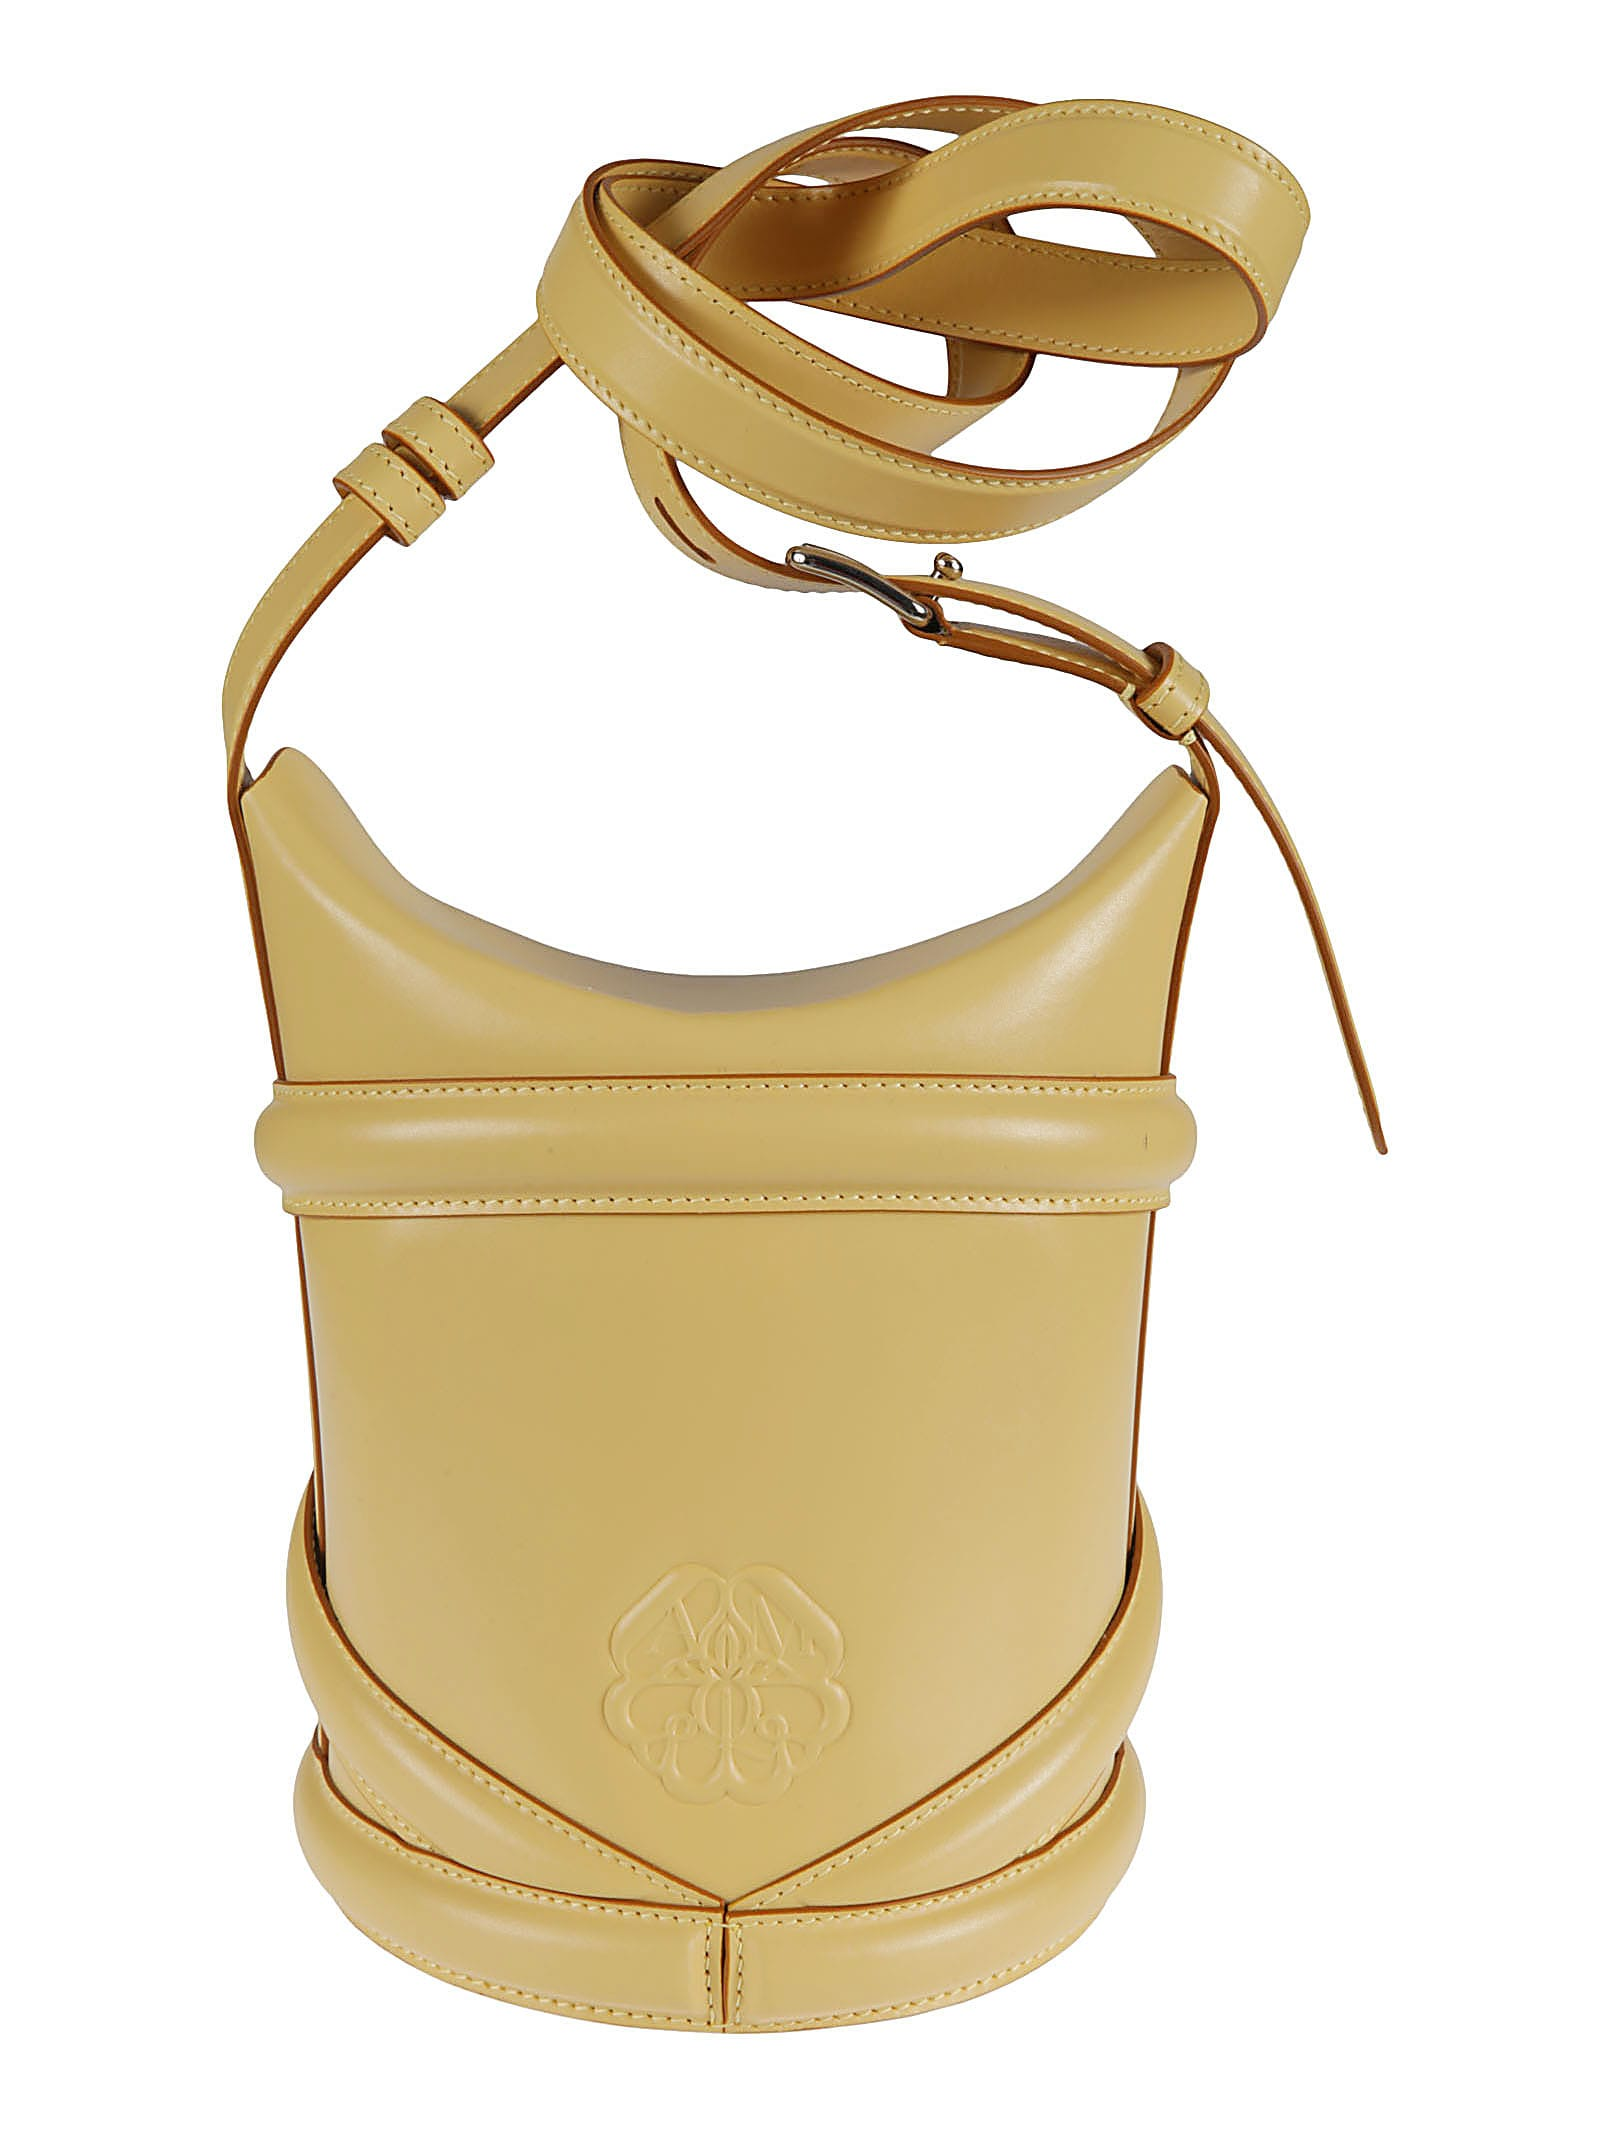 Alexander Mcqueen Leathers THE CURVE SMALL BUCKET BAG